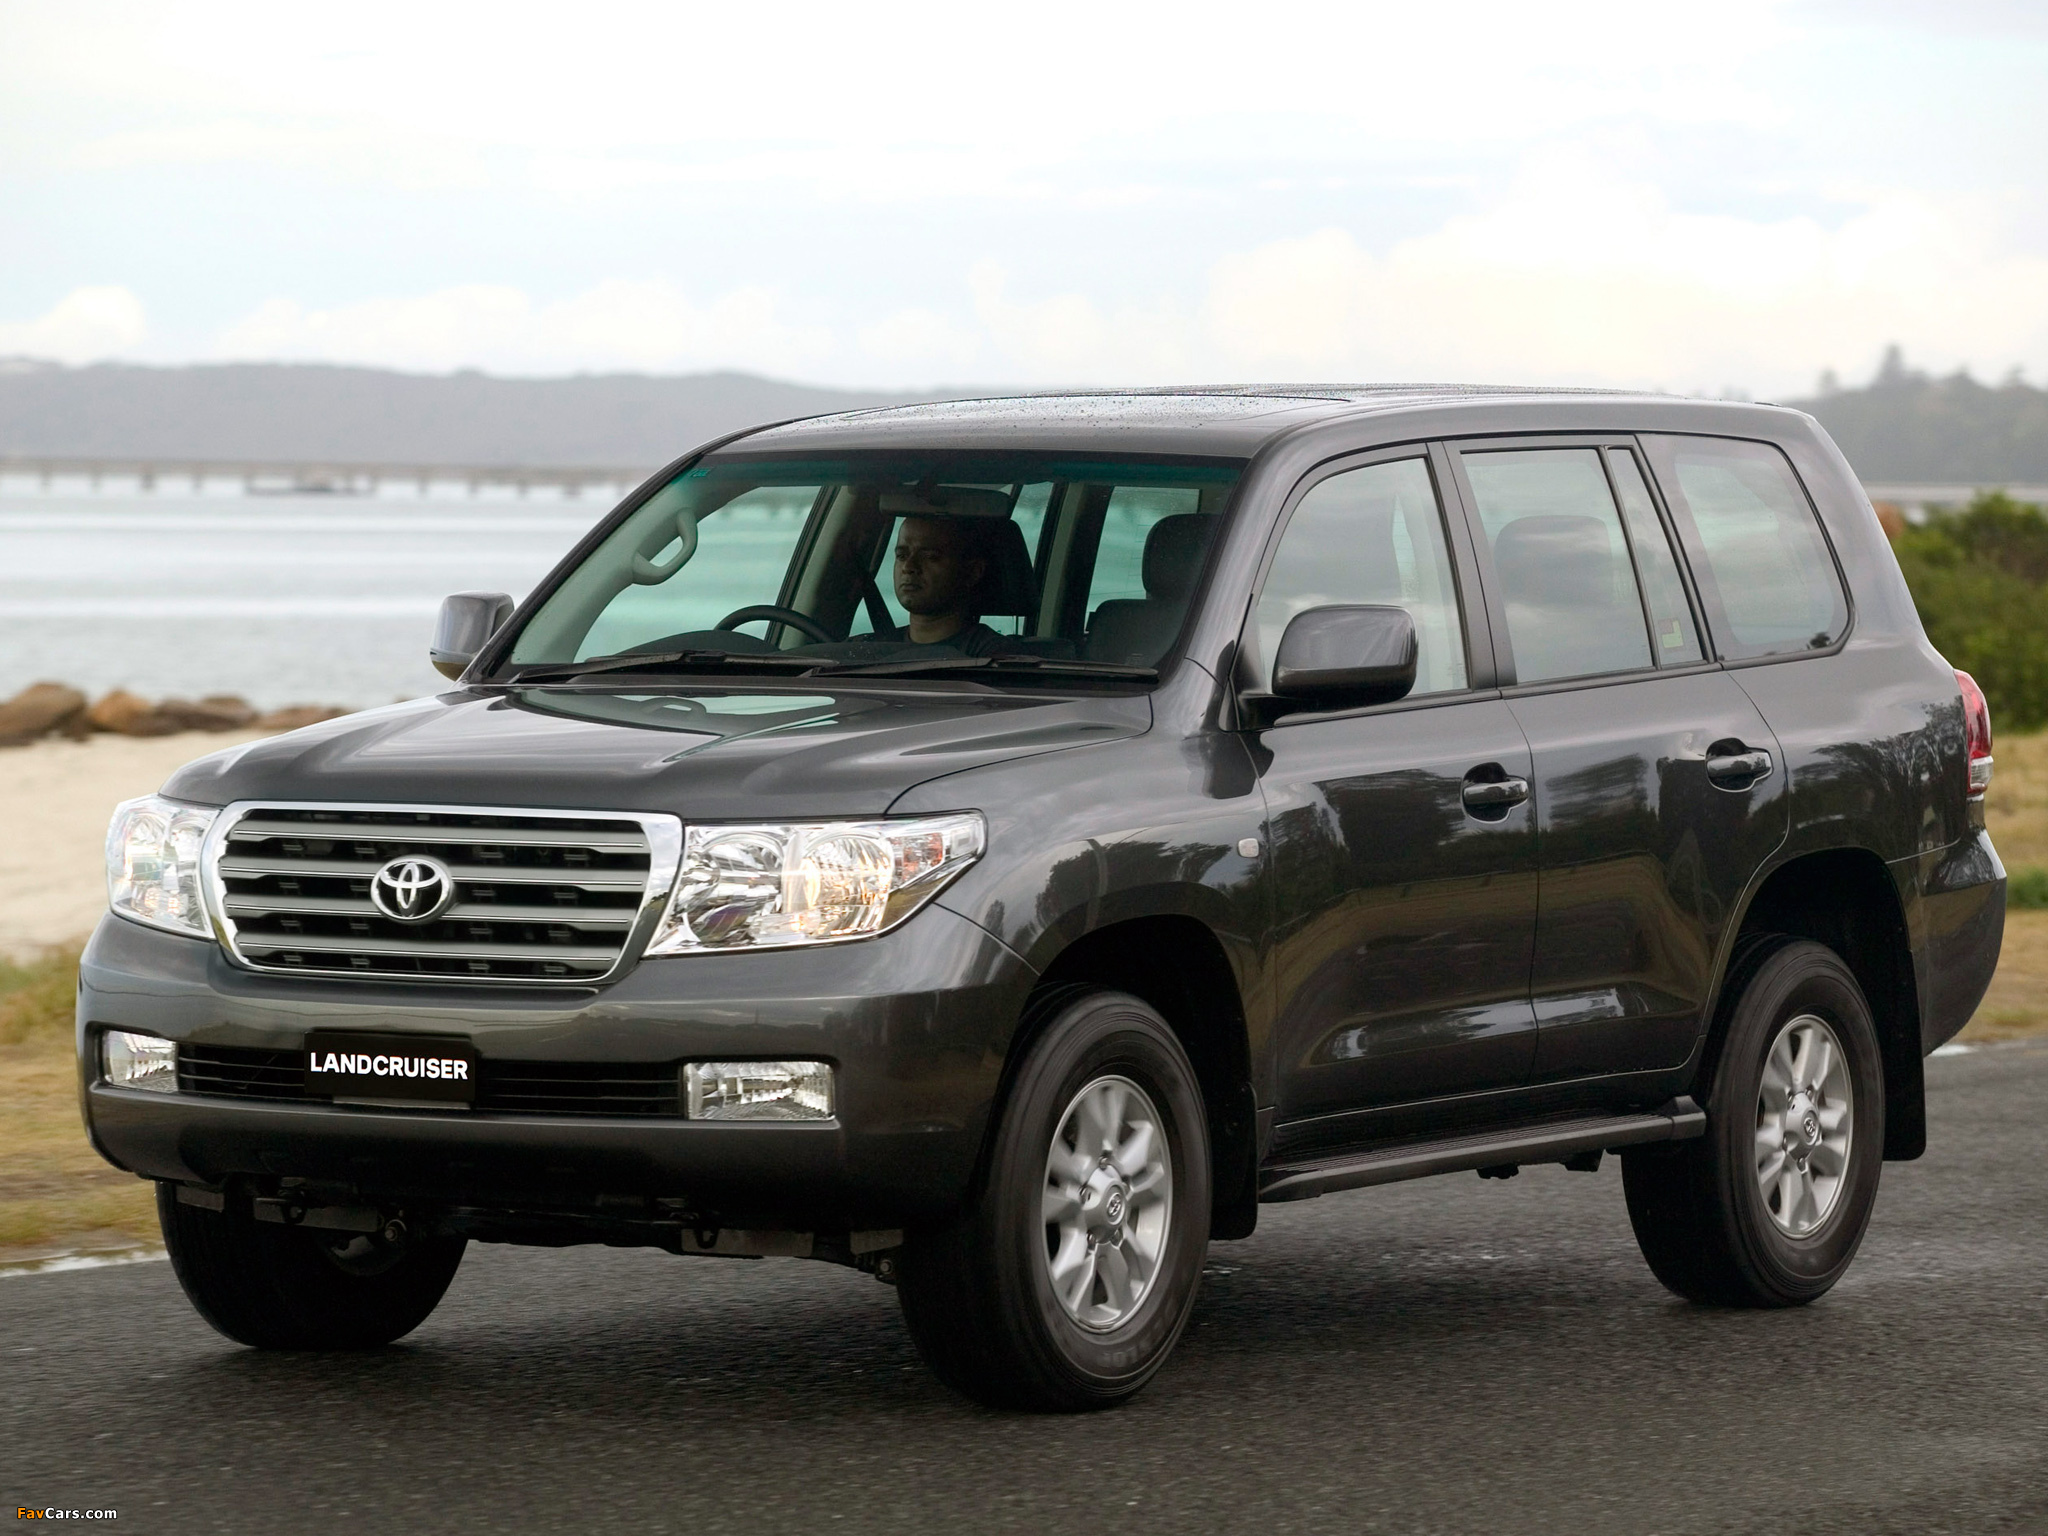 2007 Toyota Land Cruiser #23